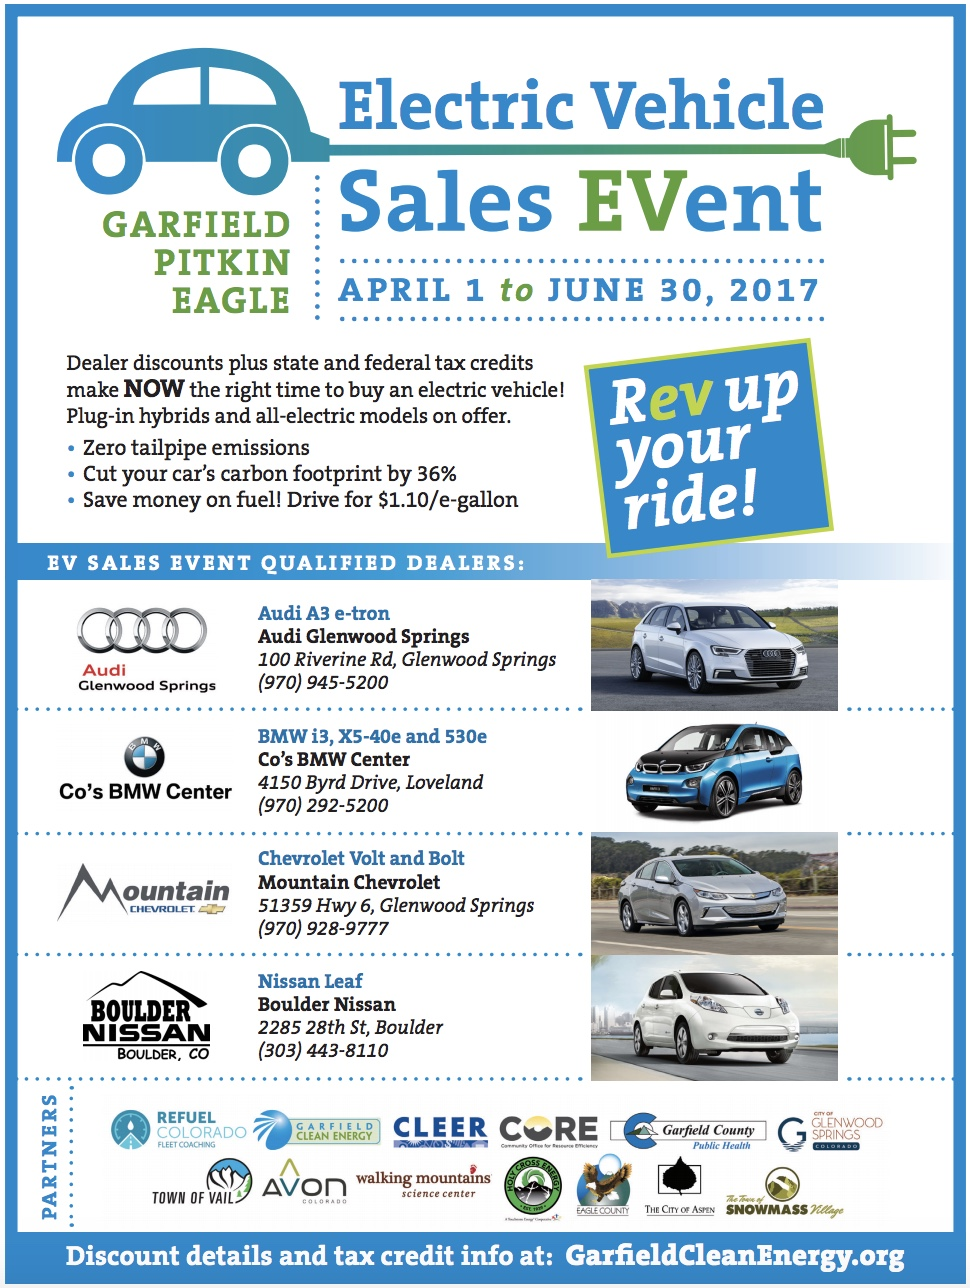 Garfield_EV sales event.jpeg